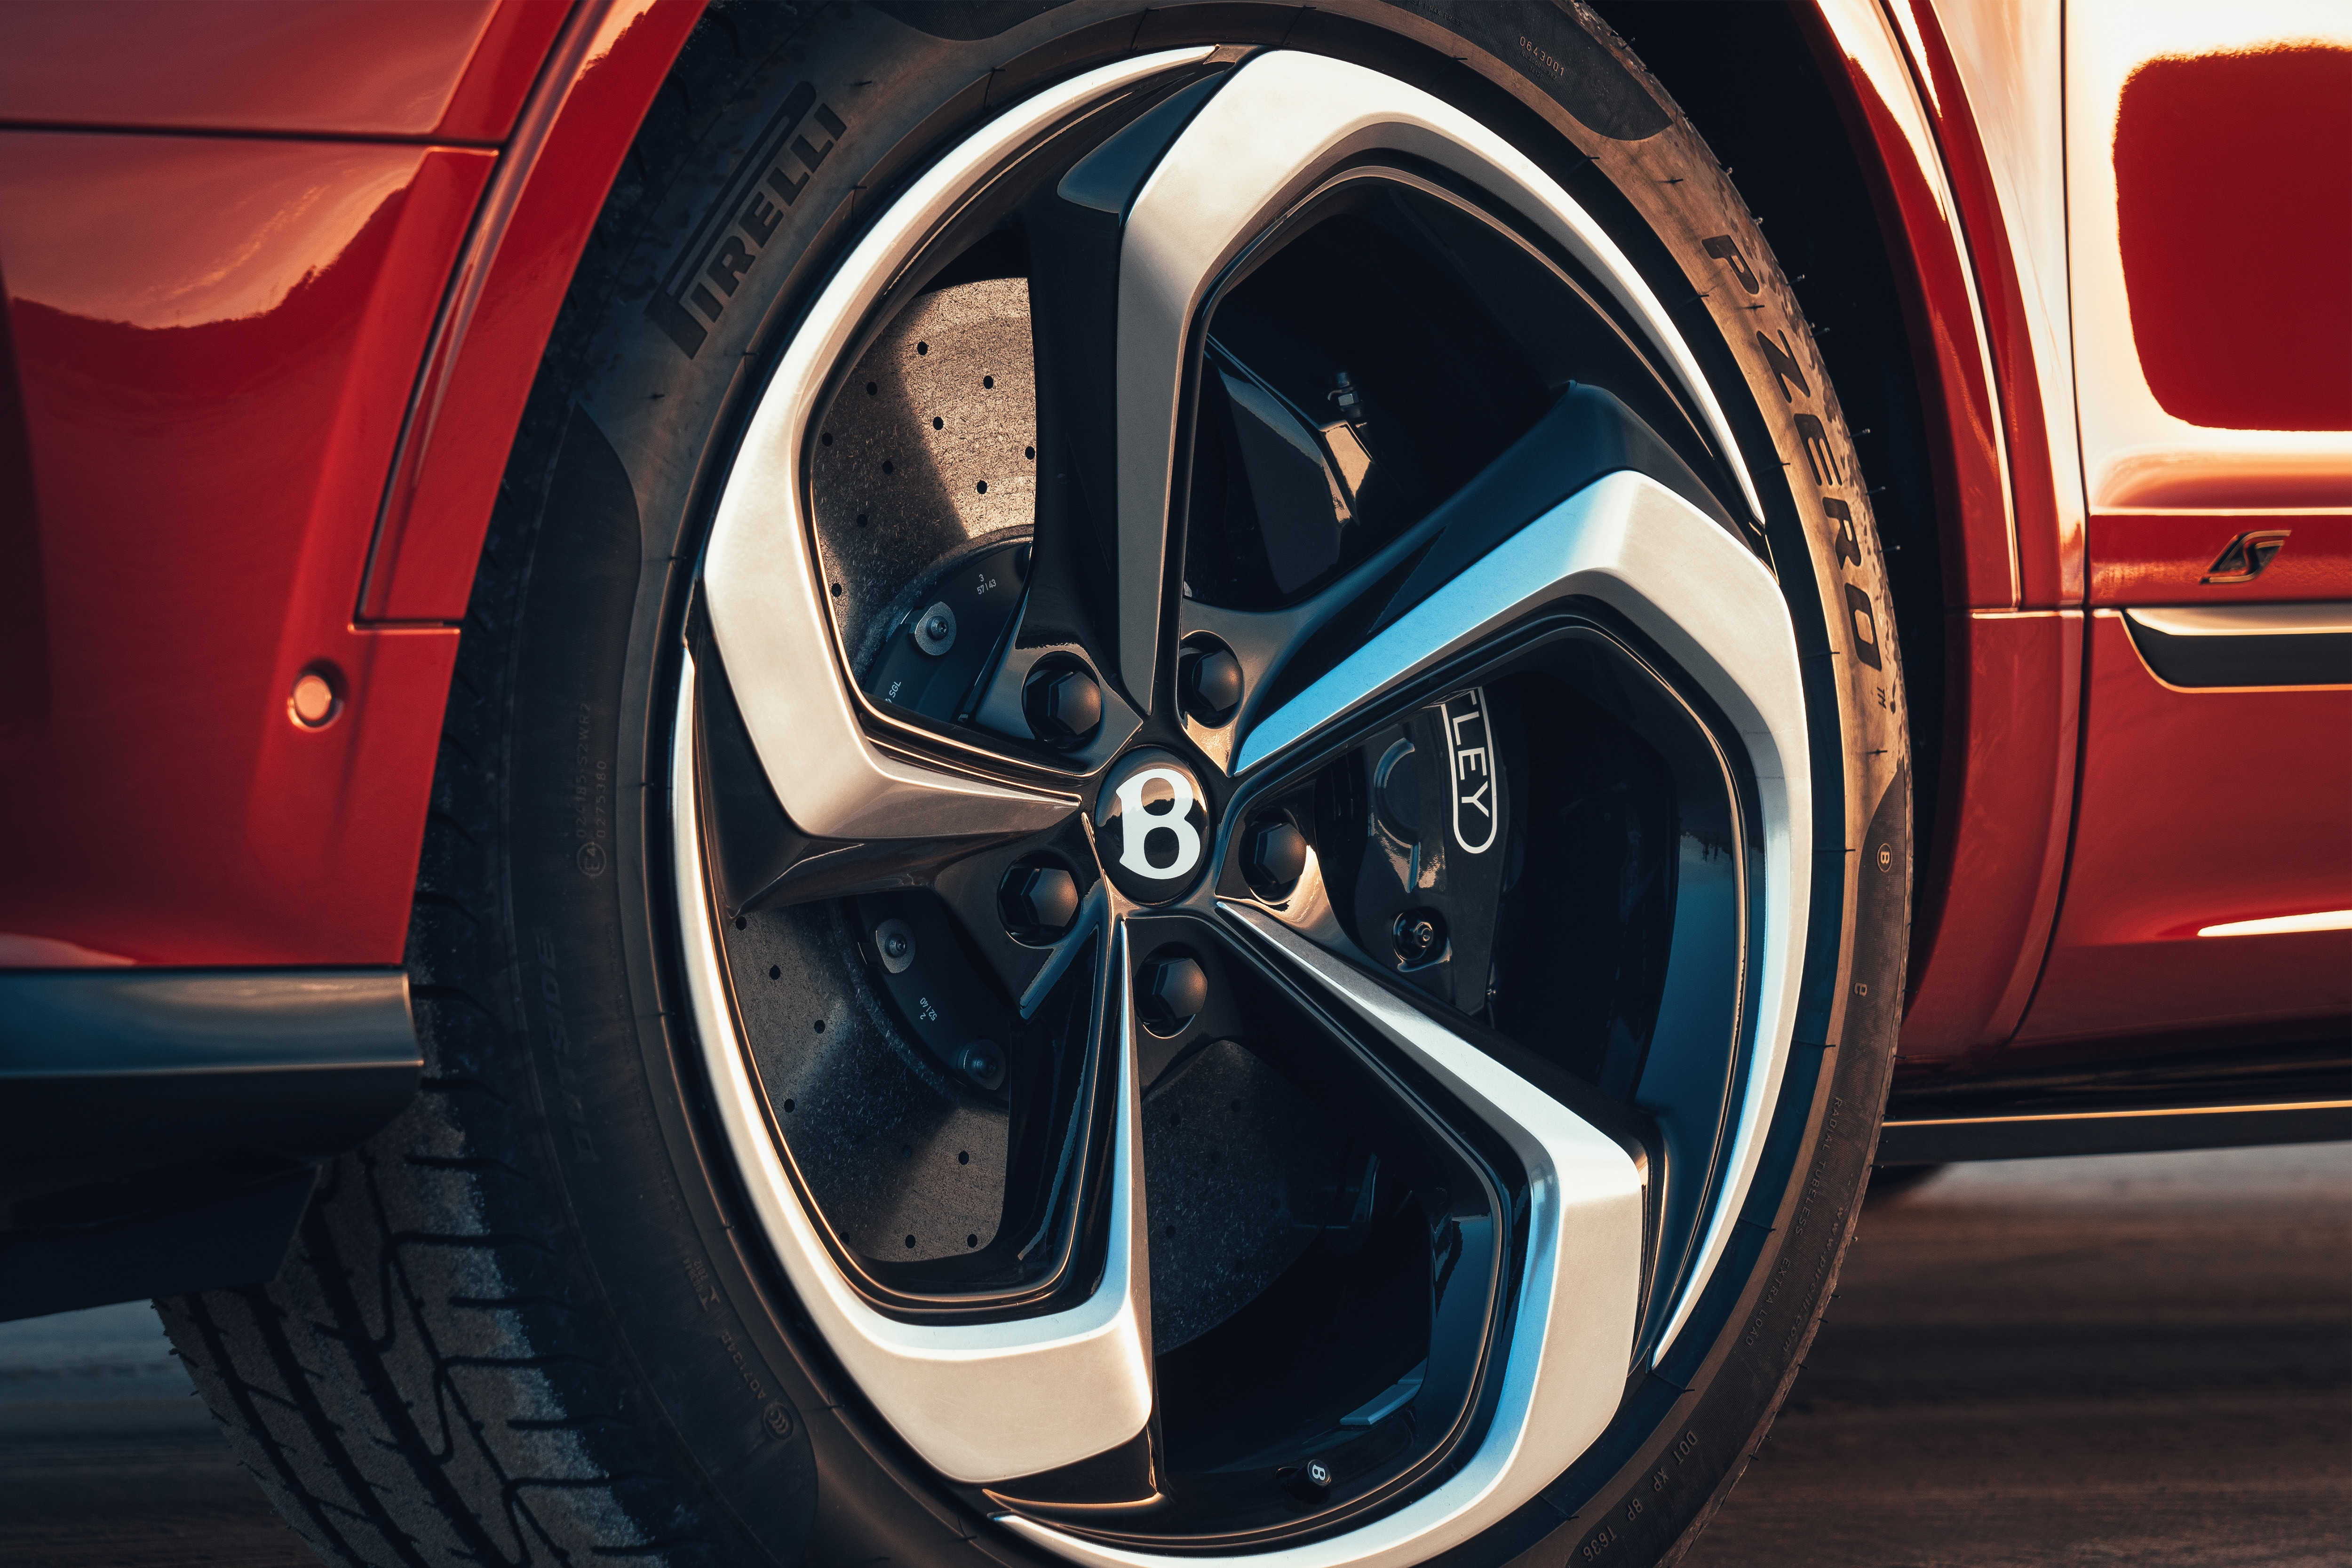 Interestingly, the 22-inch alloy wheels are not blacked out, as often done for the performance avatars of popular models to give them a more sporty appeal.